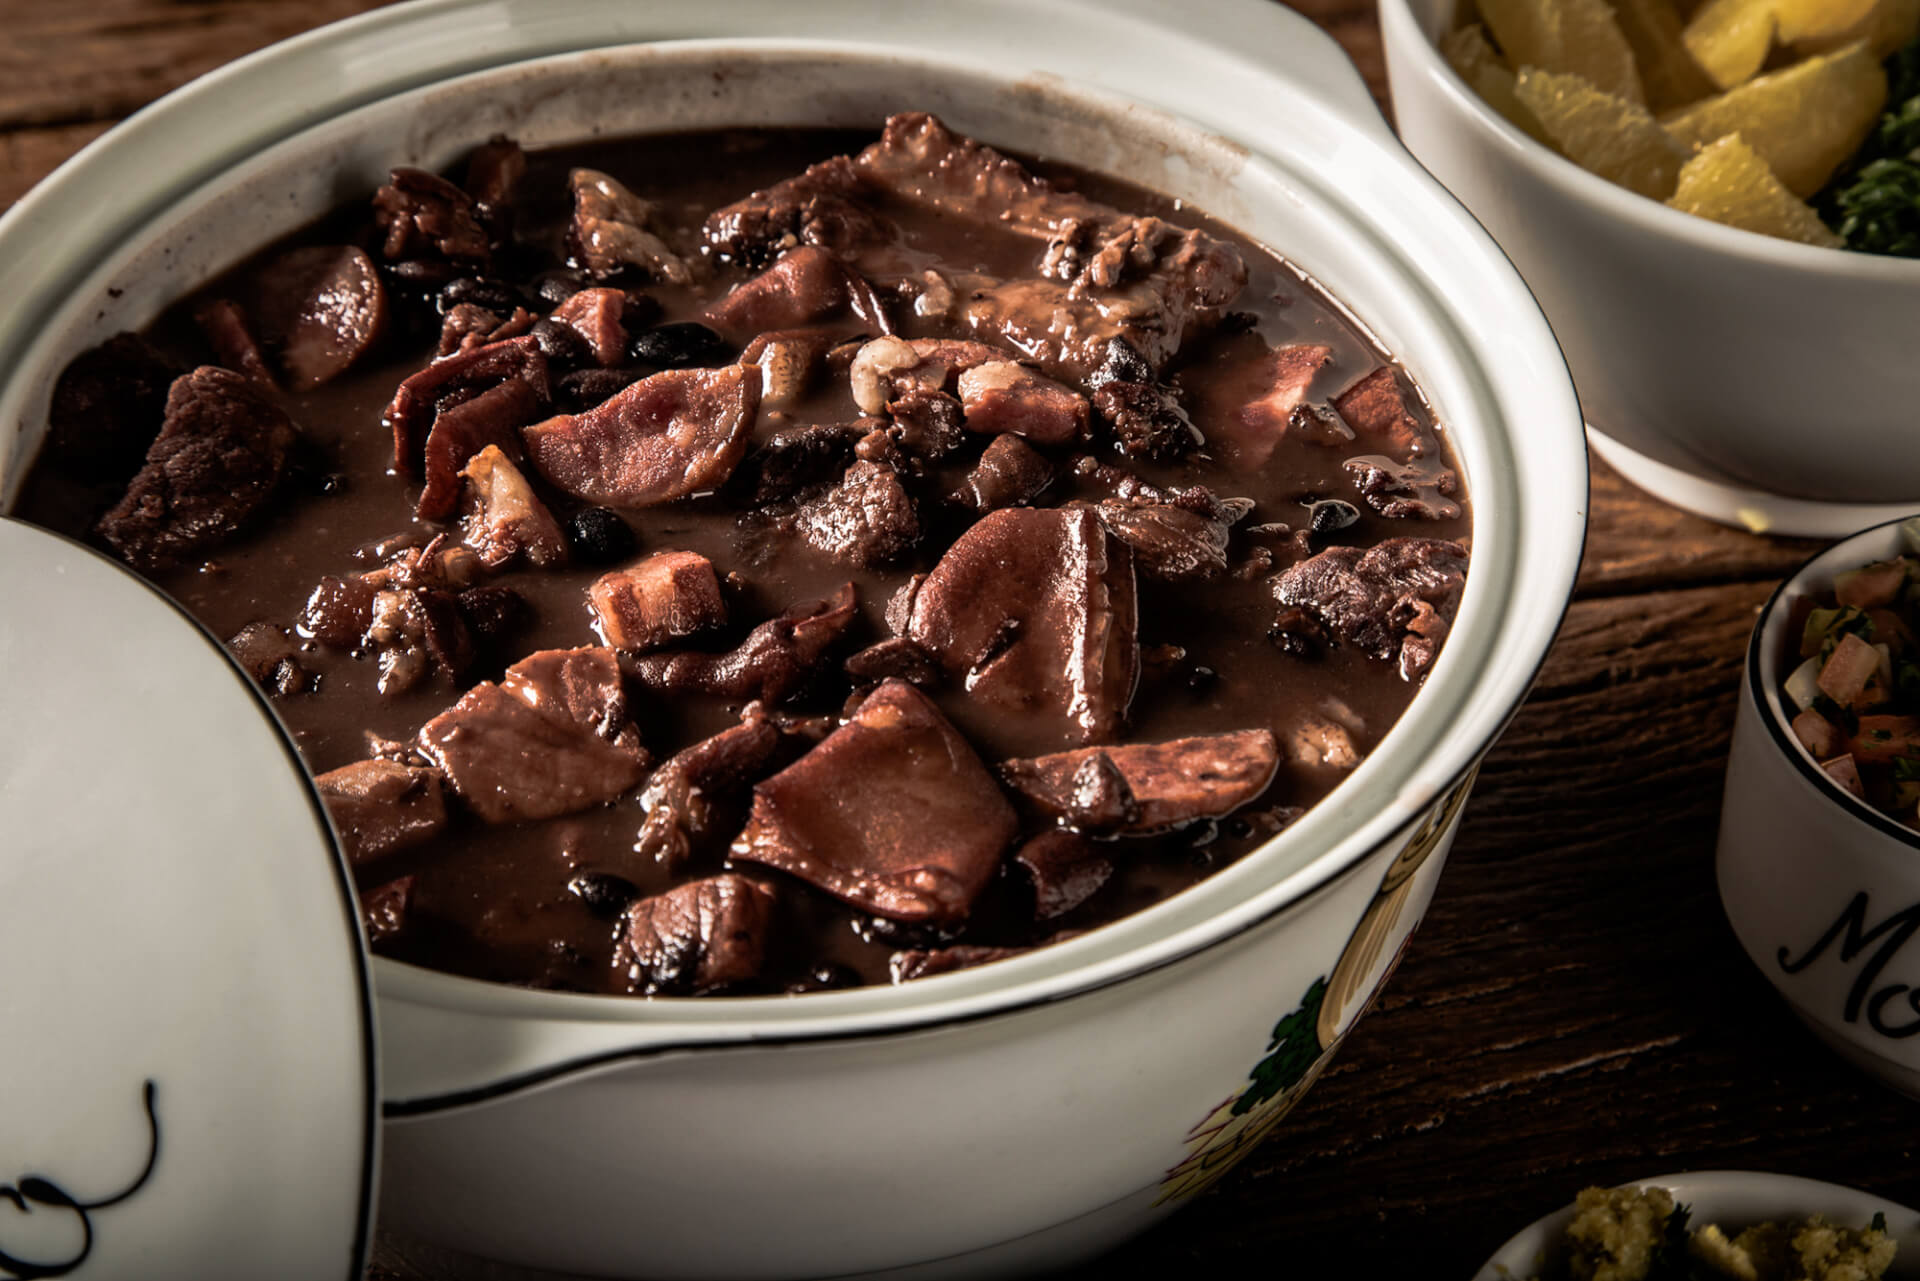 Popular Brazilian foods: Feijoada